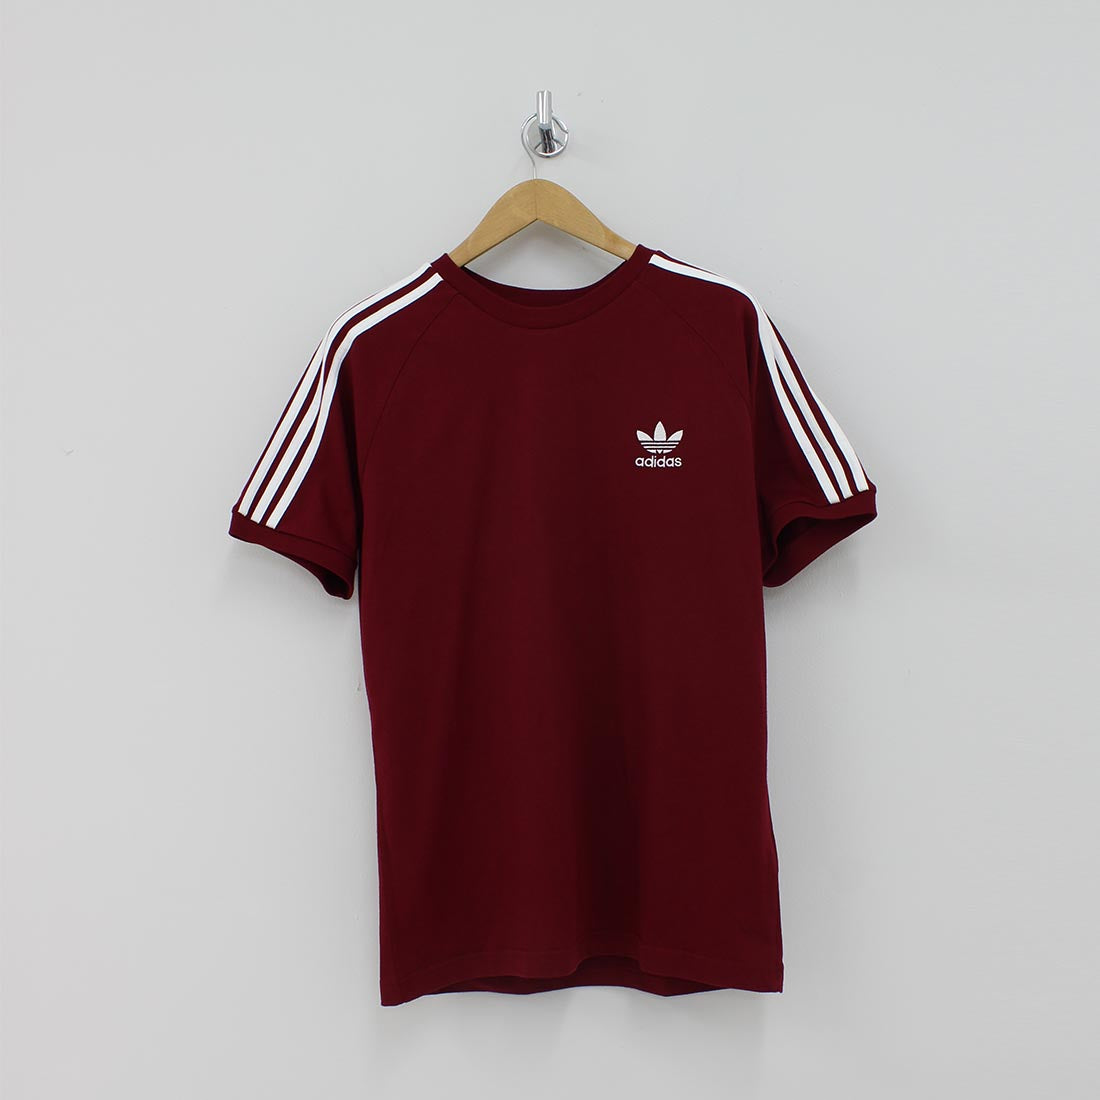 Adidas Originals Three Stripes Burgundy